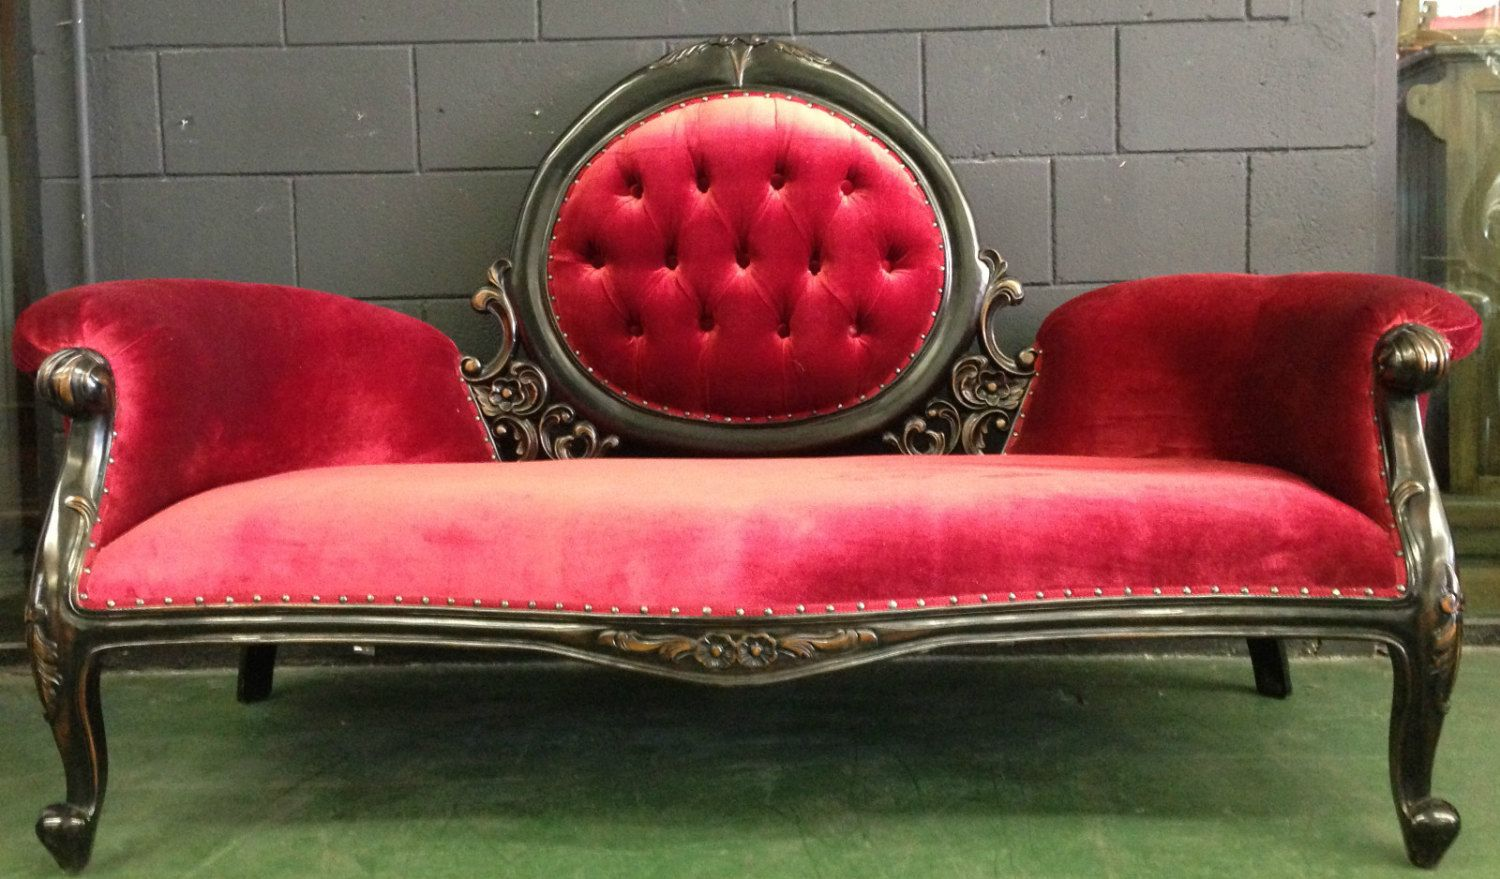 - Vintage Hollywood Regency Red Chaise Lounge, Etsy. Red Chaise